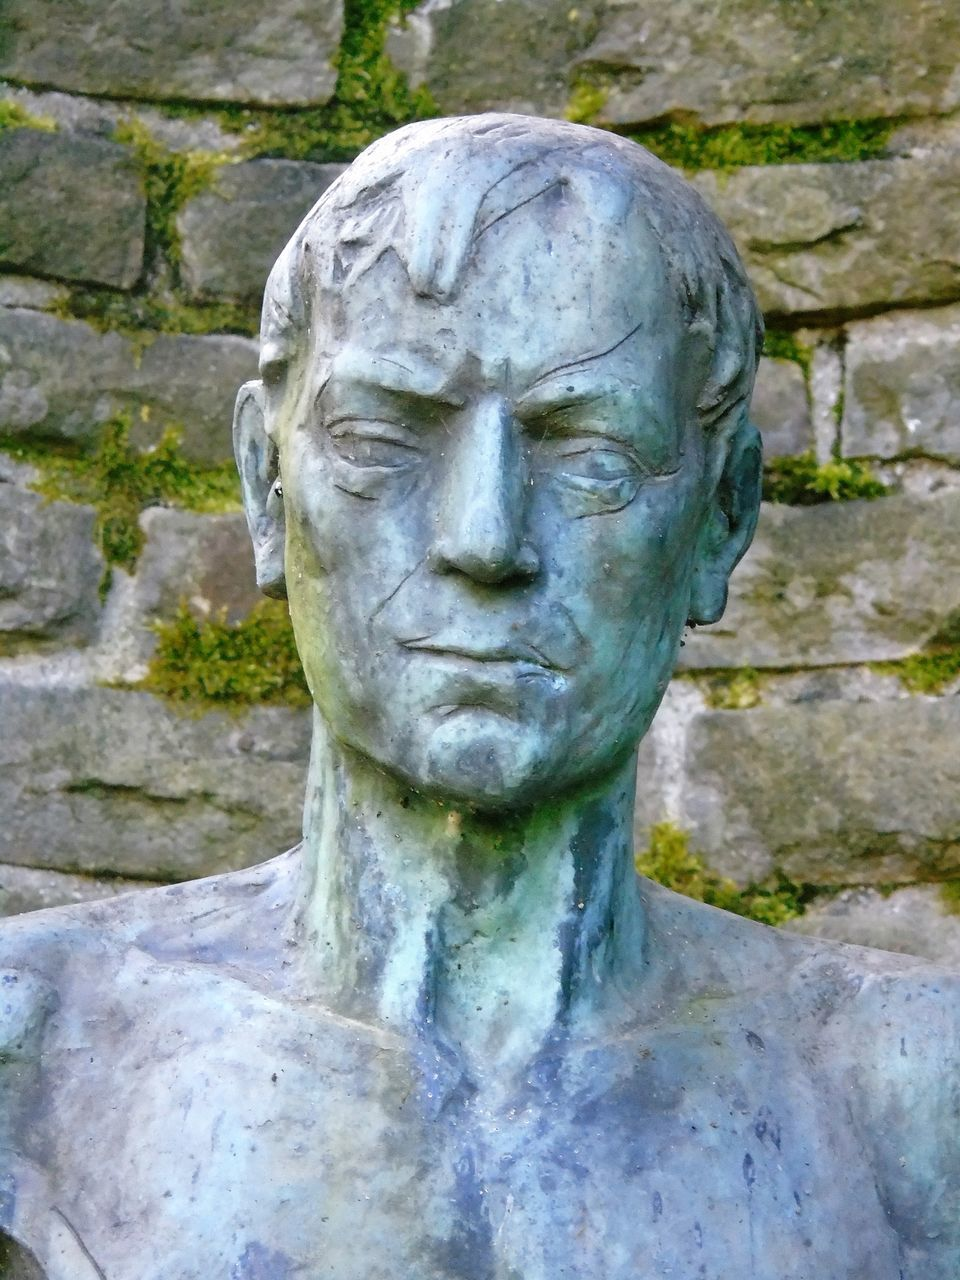 statue, sculpture, stone material, human face, history, day, outdoors, close-up, people